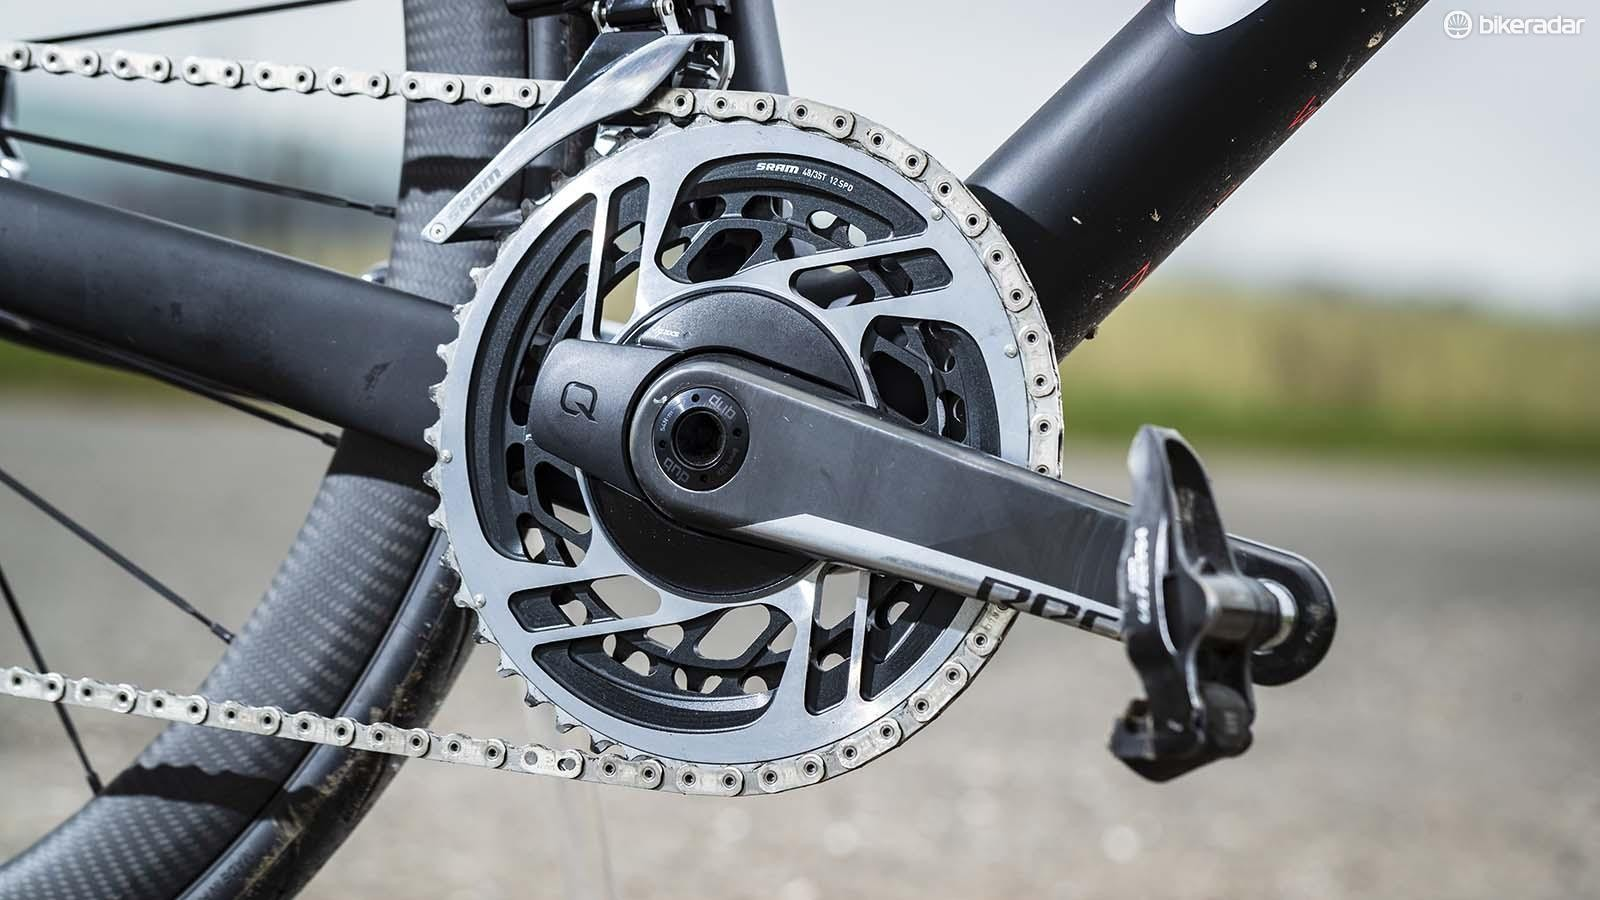 The new one-piece direct mount double chainrings for the RED crankset are a serious piece of machining